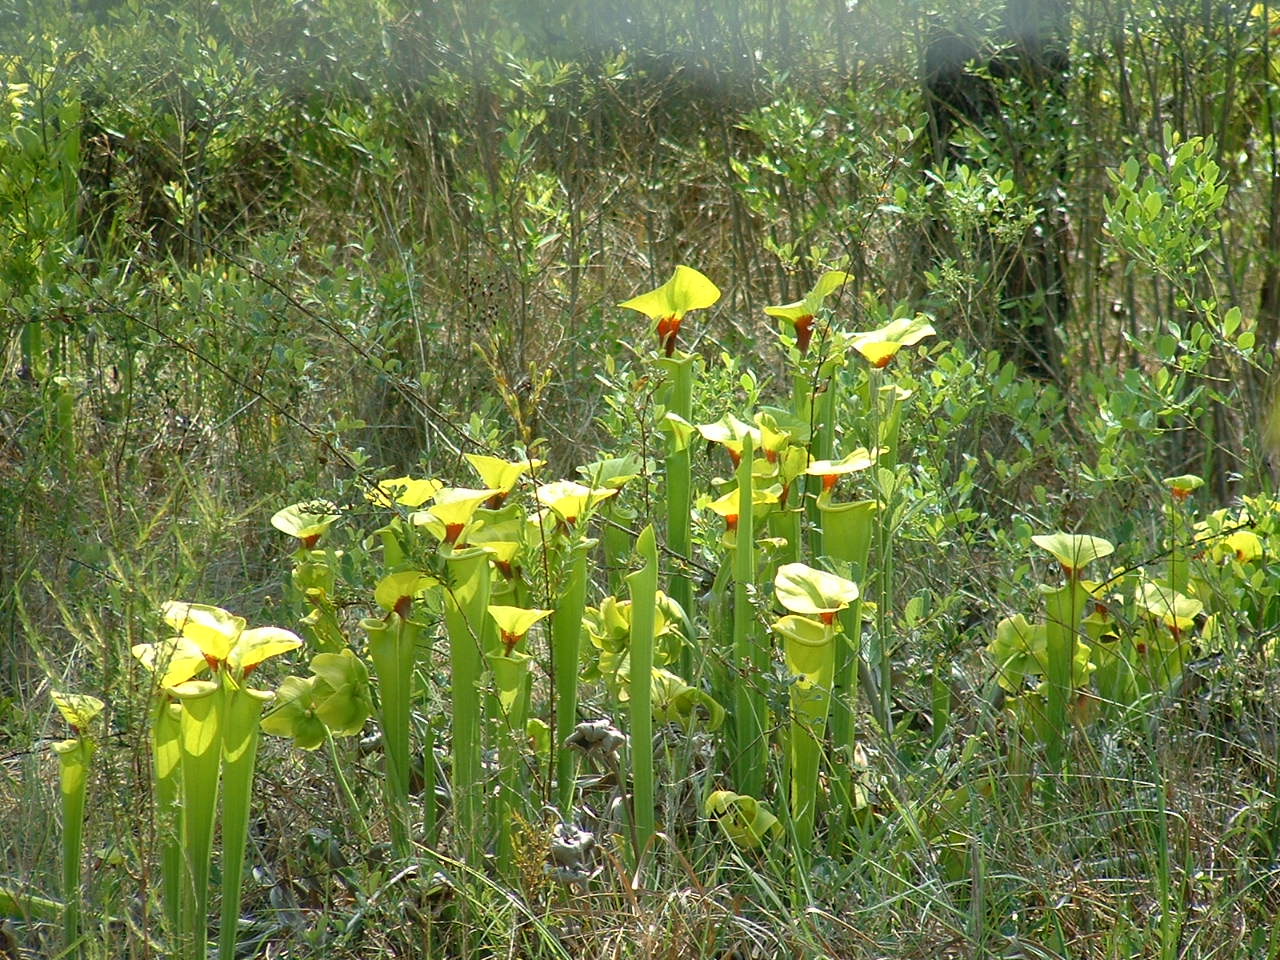 yellowpitcherplant.jpg